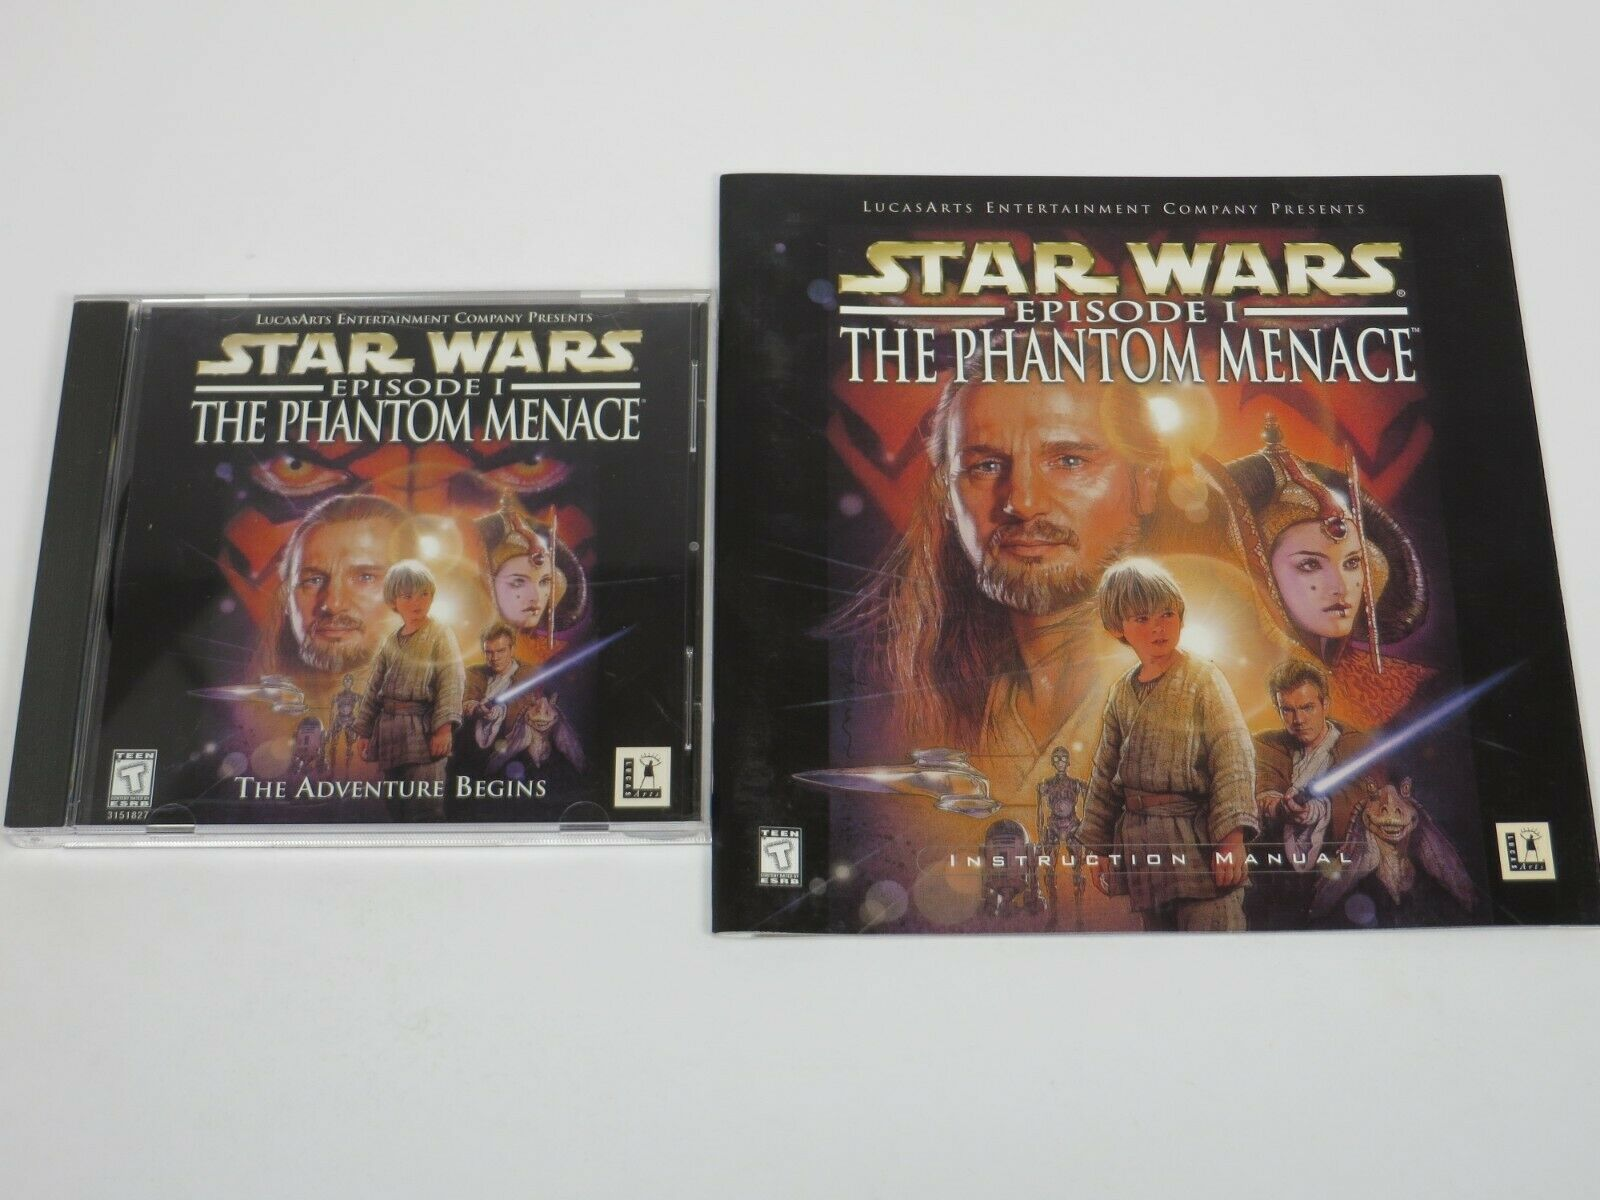 Computer Games - Star Wars Episode 1 The Phantom Menace (PC, 1999) PC Computer Game LucasArts